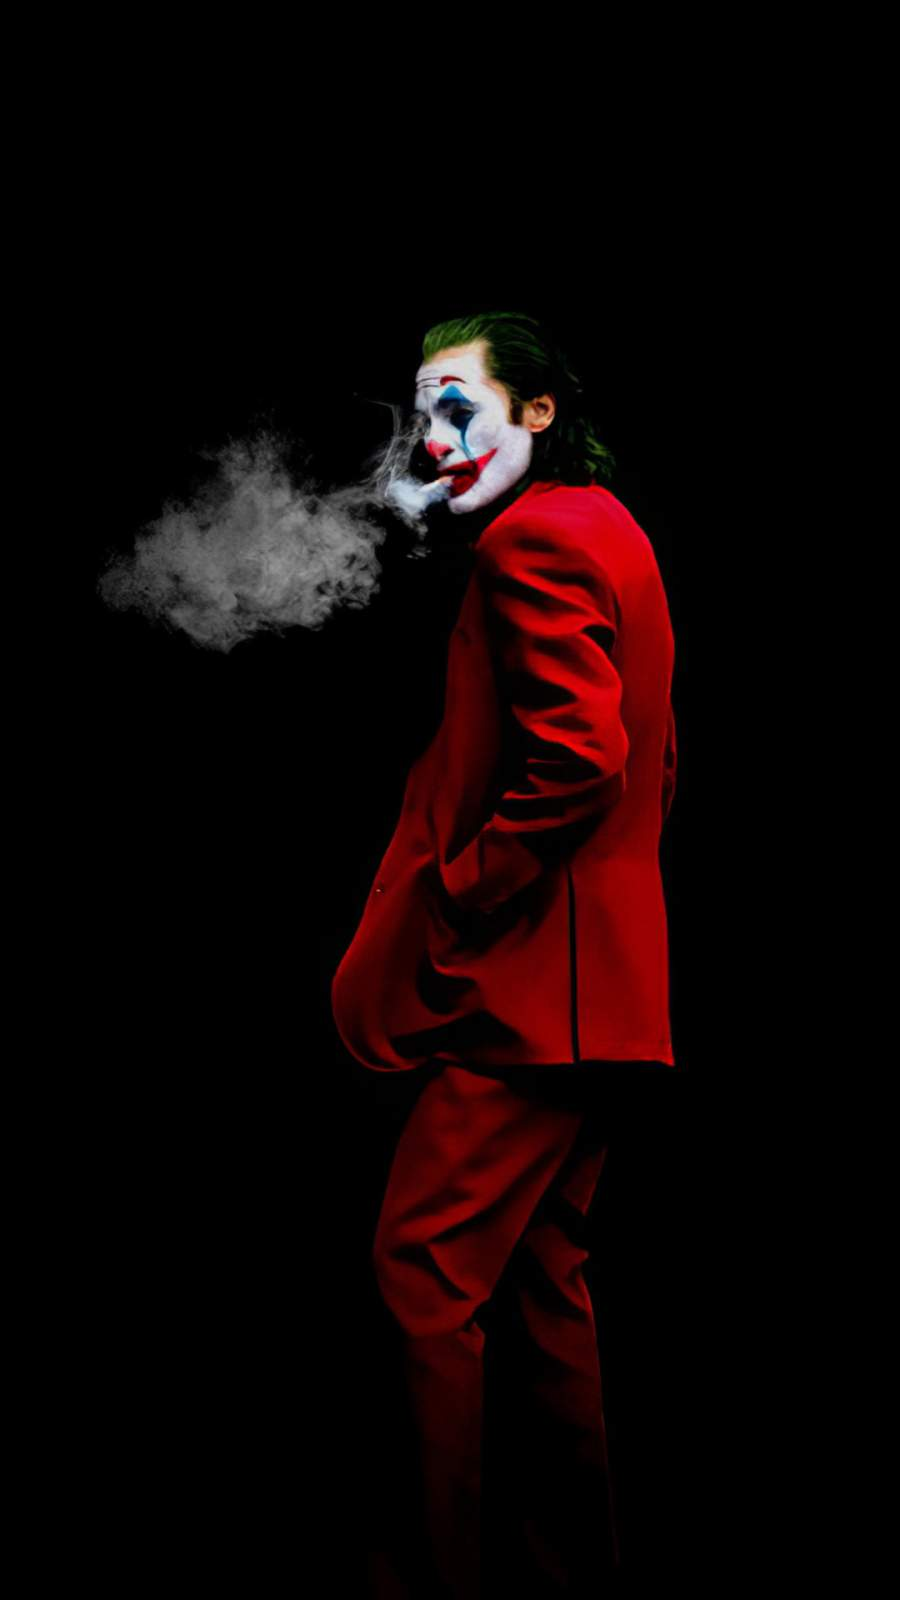 Joker Bad Guy iPhone Wallpaper